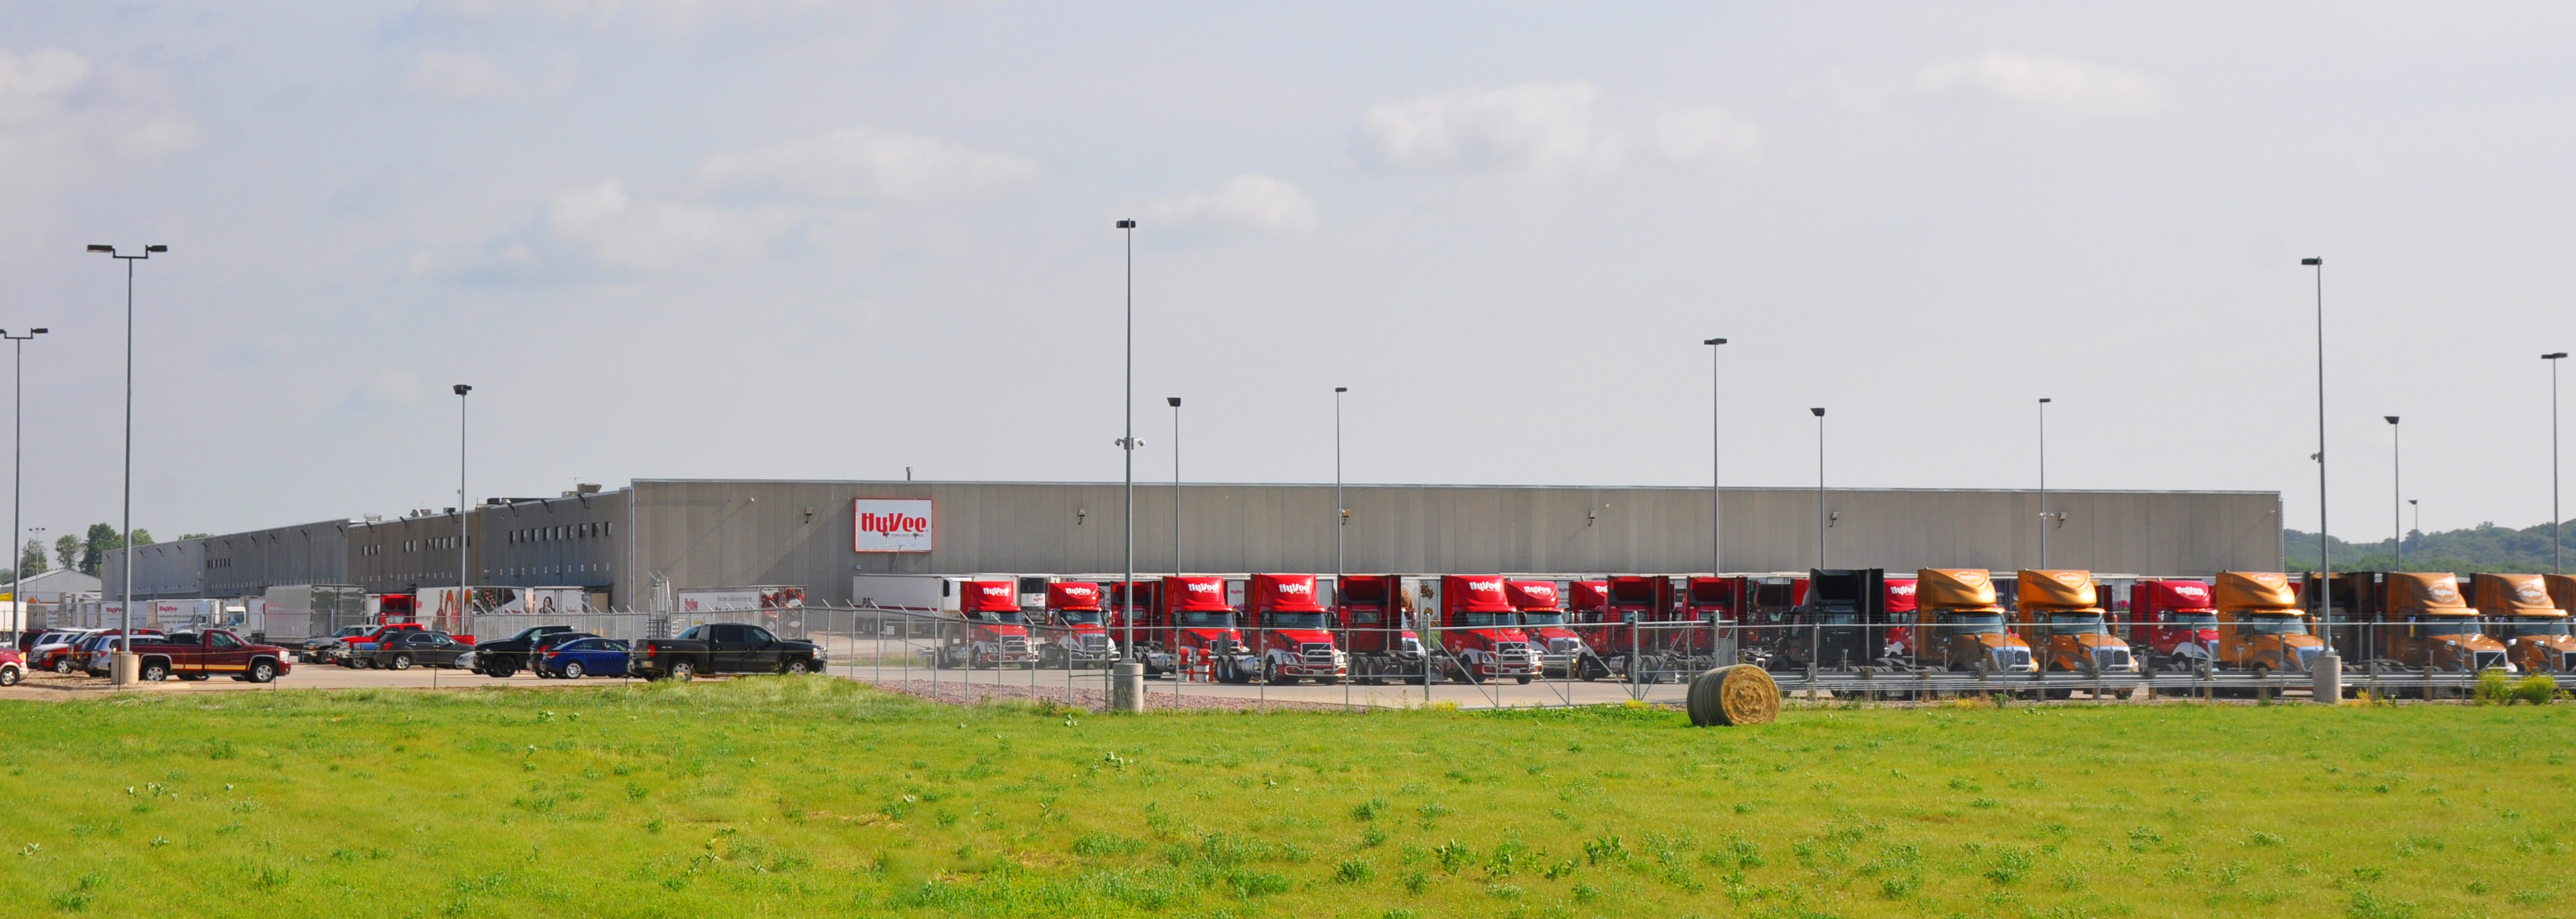 HyVee Distribution Center in Cherokee Iowa